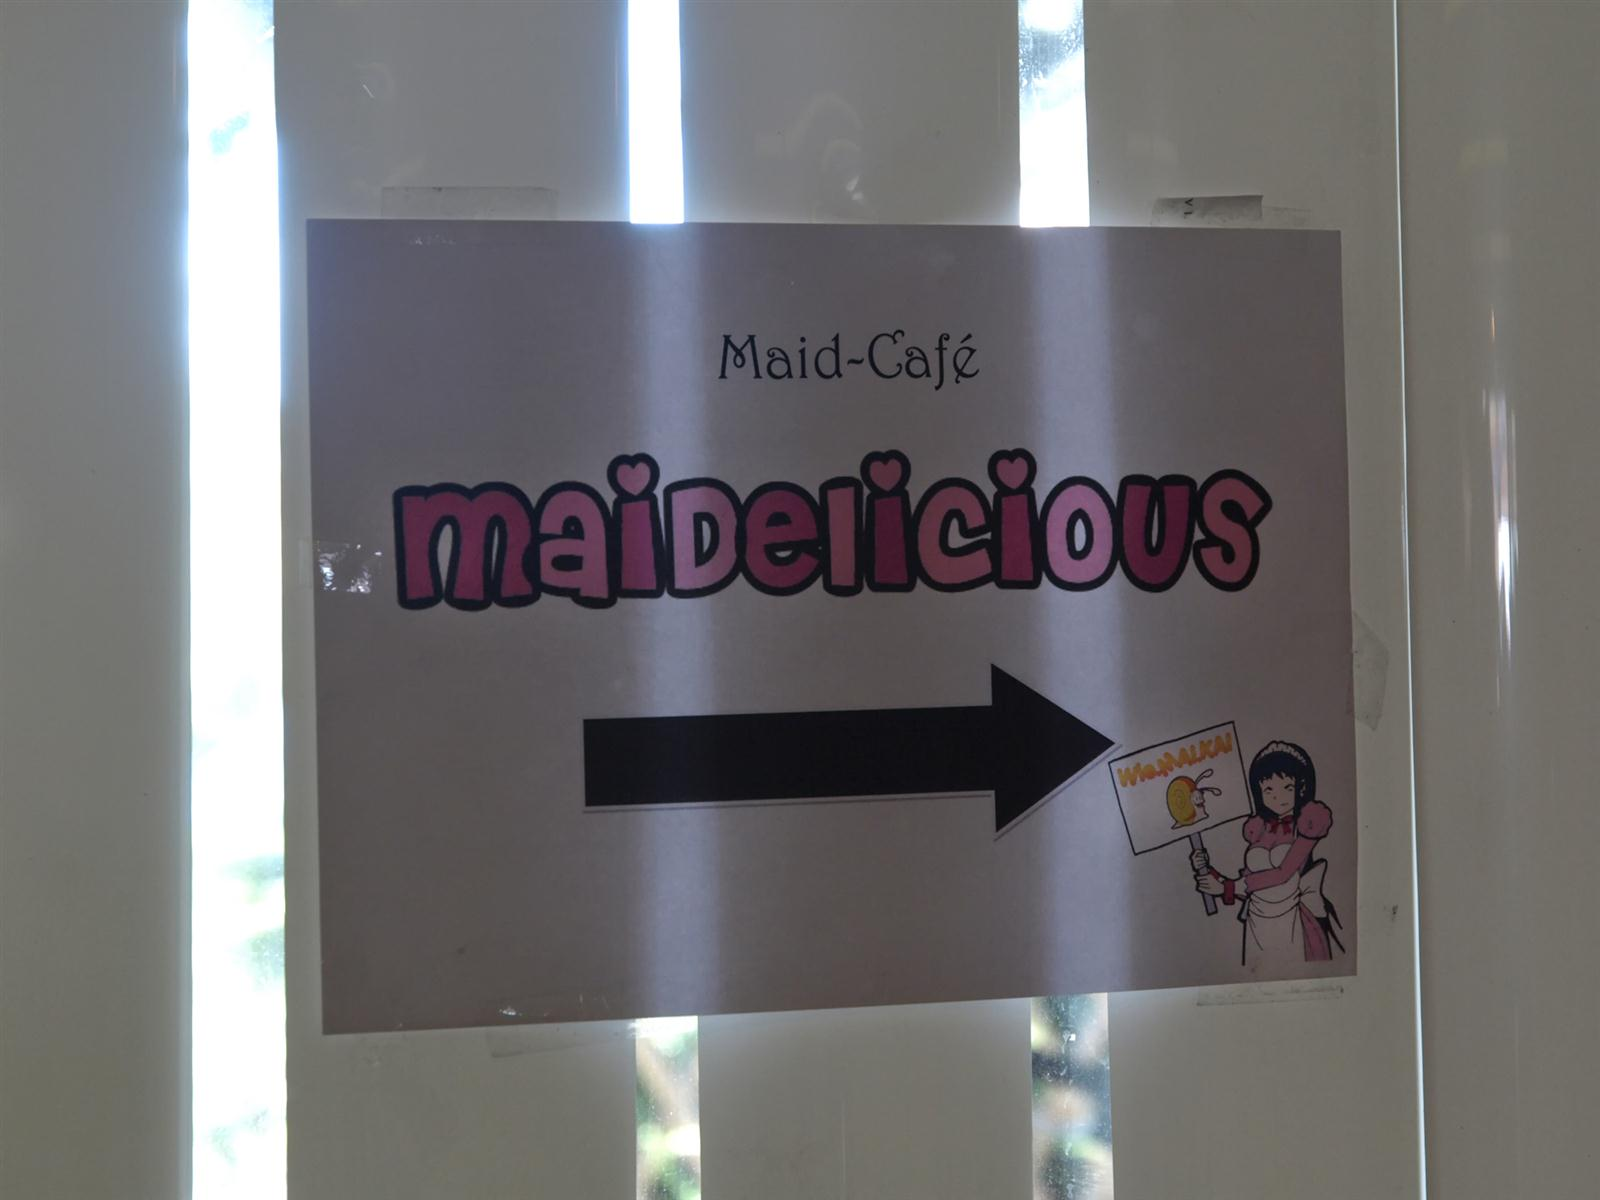 Maidcafe (zappy)